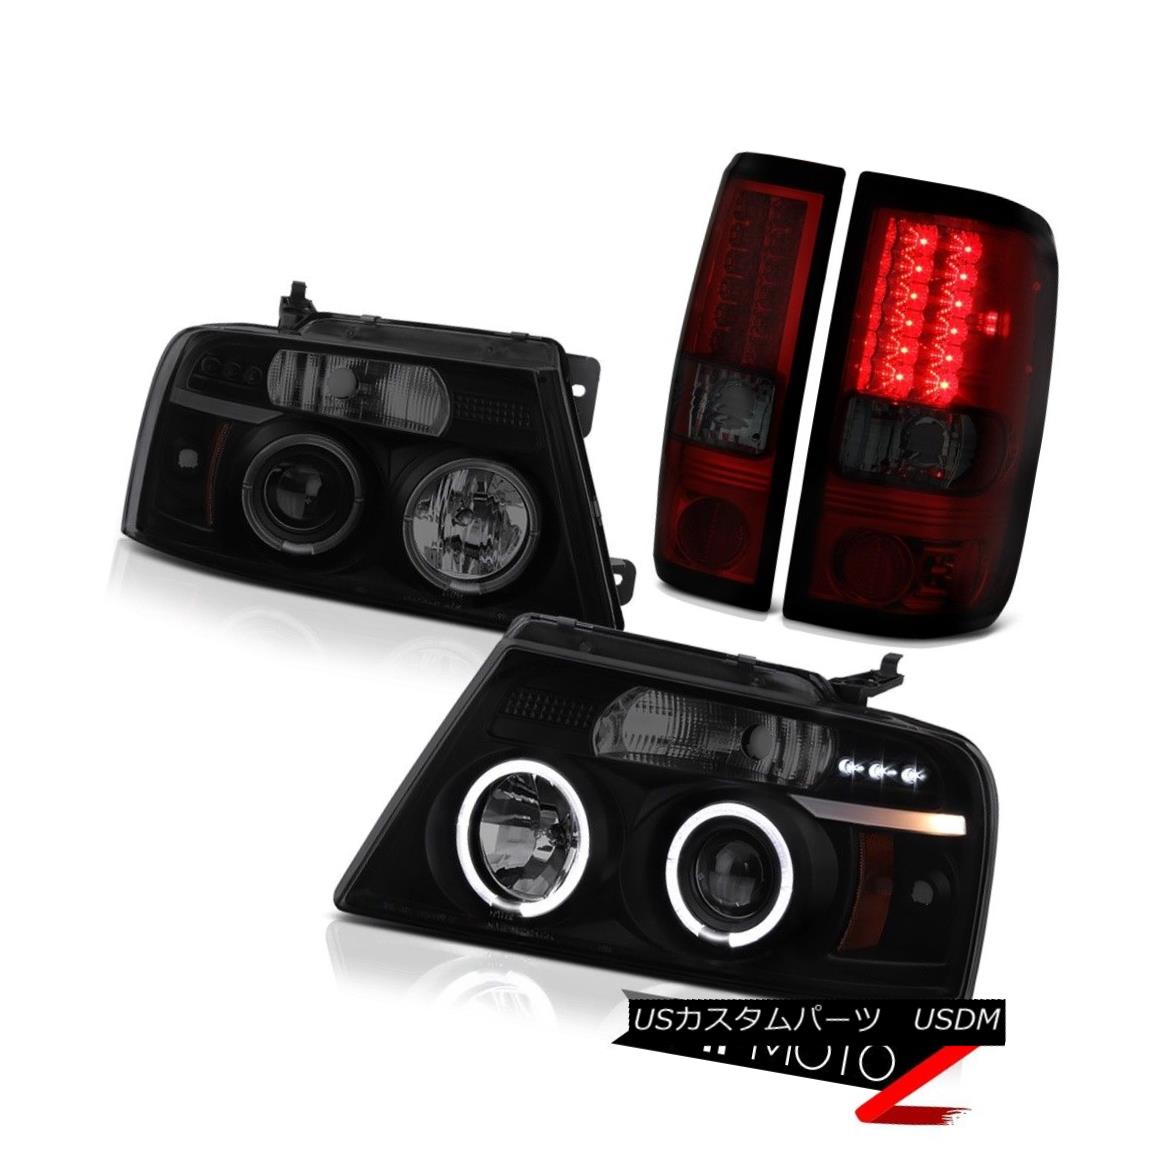 ヘッドライト 2004-2008 Ford F150 Lobo Halo Headlight DRL Sinister Black LED Bulbs Tail Lights 2004-2008 Ford F150 Lobo HaloヘッドライトDRL SinisterブラックLED電球テールライト